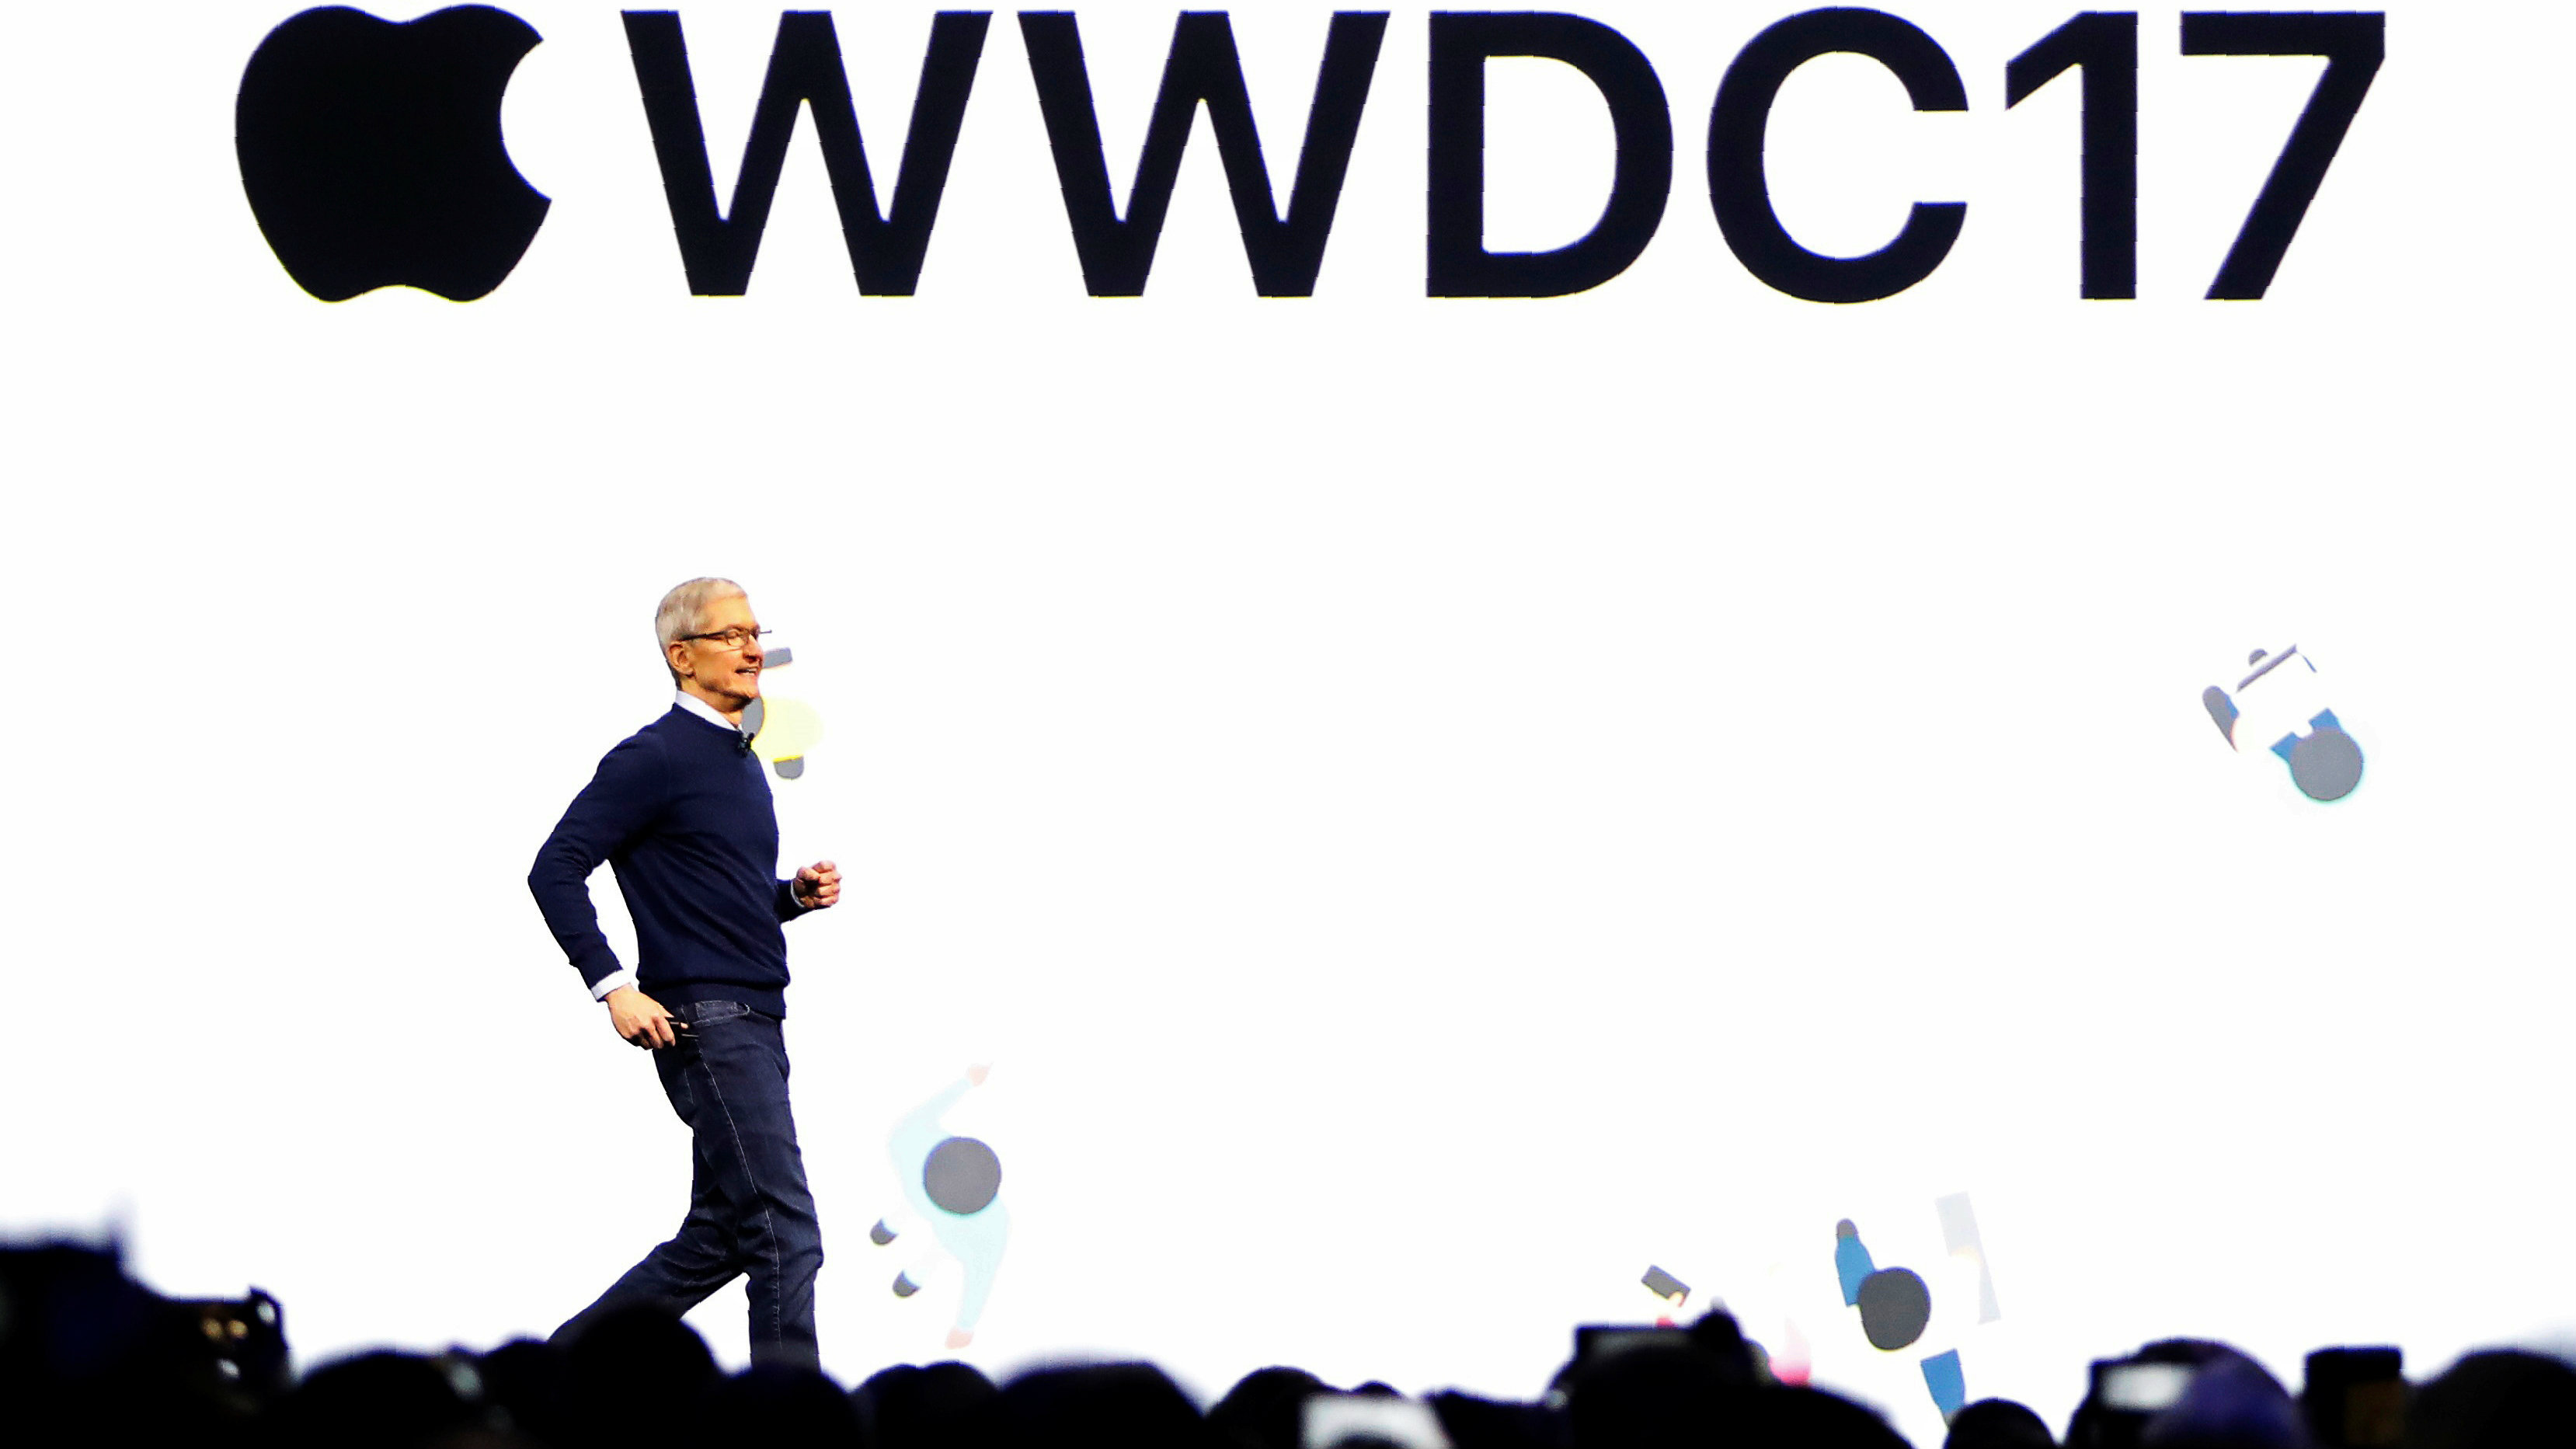 apple ceo at wwdc 2017